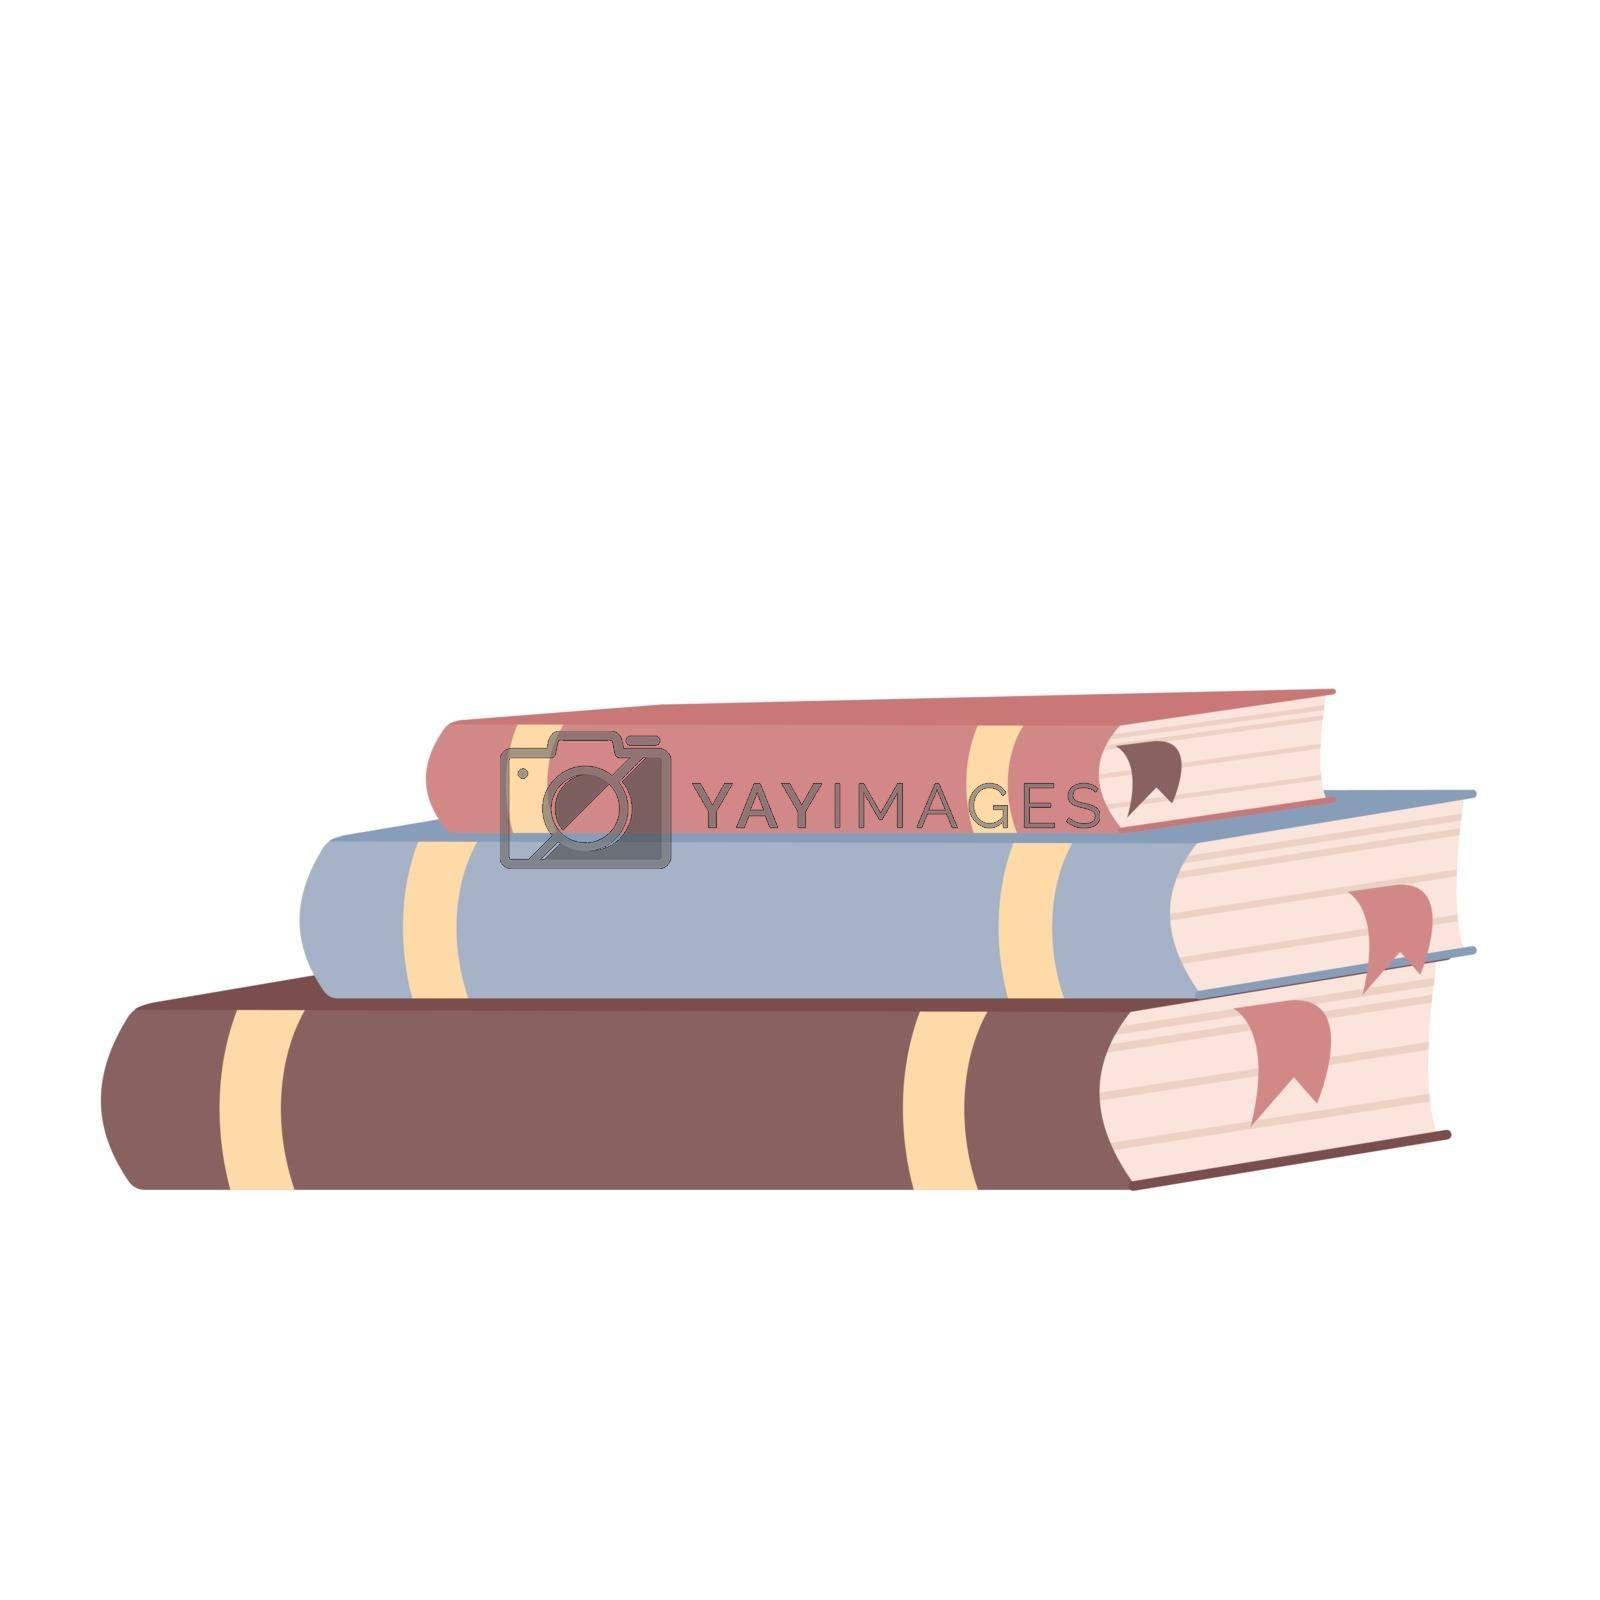 Books stack cartoon vector illustration. Textbooks with bookmarks flat color objects. Student accessory, educational materials isolated on white background. College lifestyle attribute